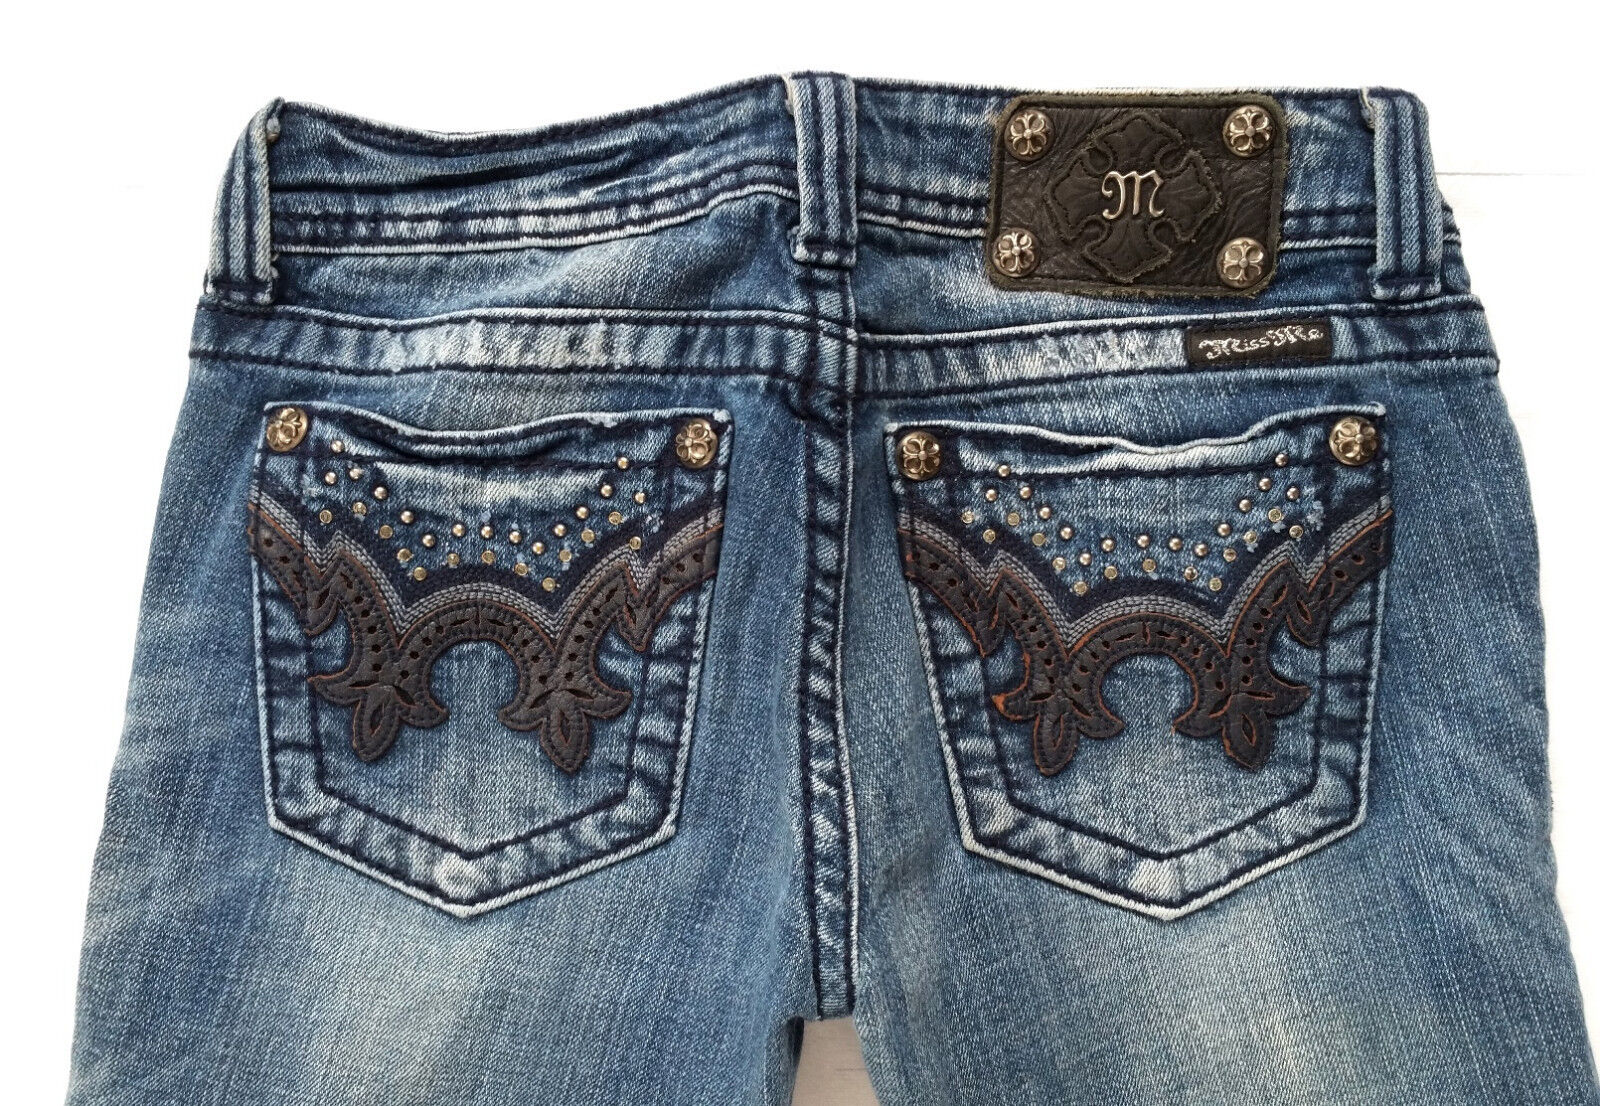 Miss Me Crystal Embellished Bootcut Denim Jeans 26 in x 34 Style JW5307B5